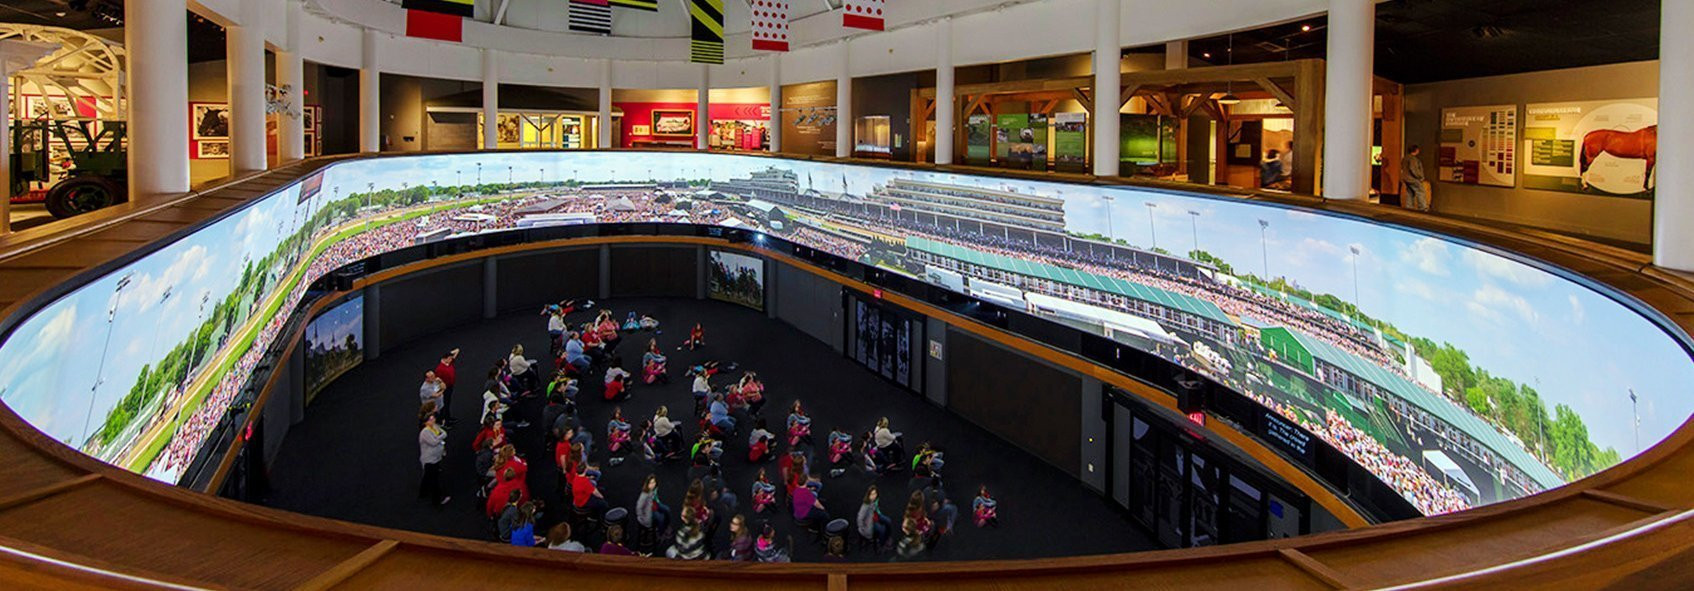 Image result for image, picture, photo, greatest race , theater, derby museum